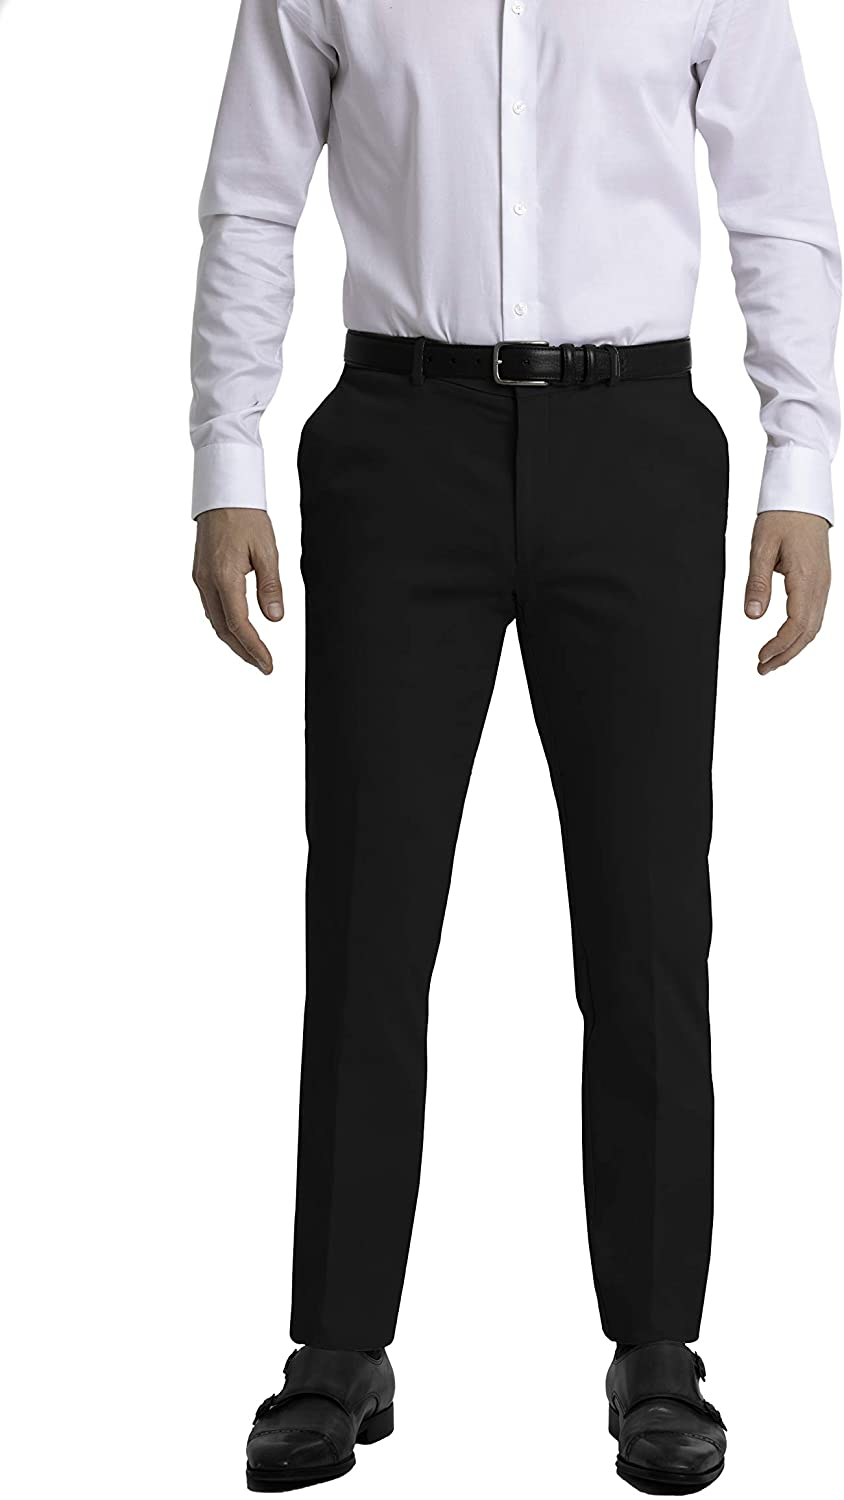 Tommy Hilfiger Men's Big and Tall Stretch Comfort Dress Chino with Expandable Waist, black, 48W x 30L